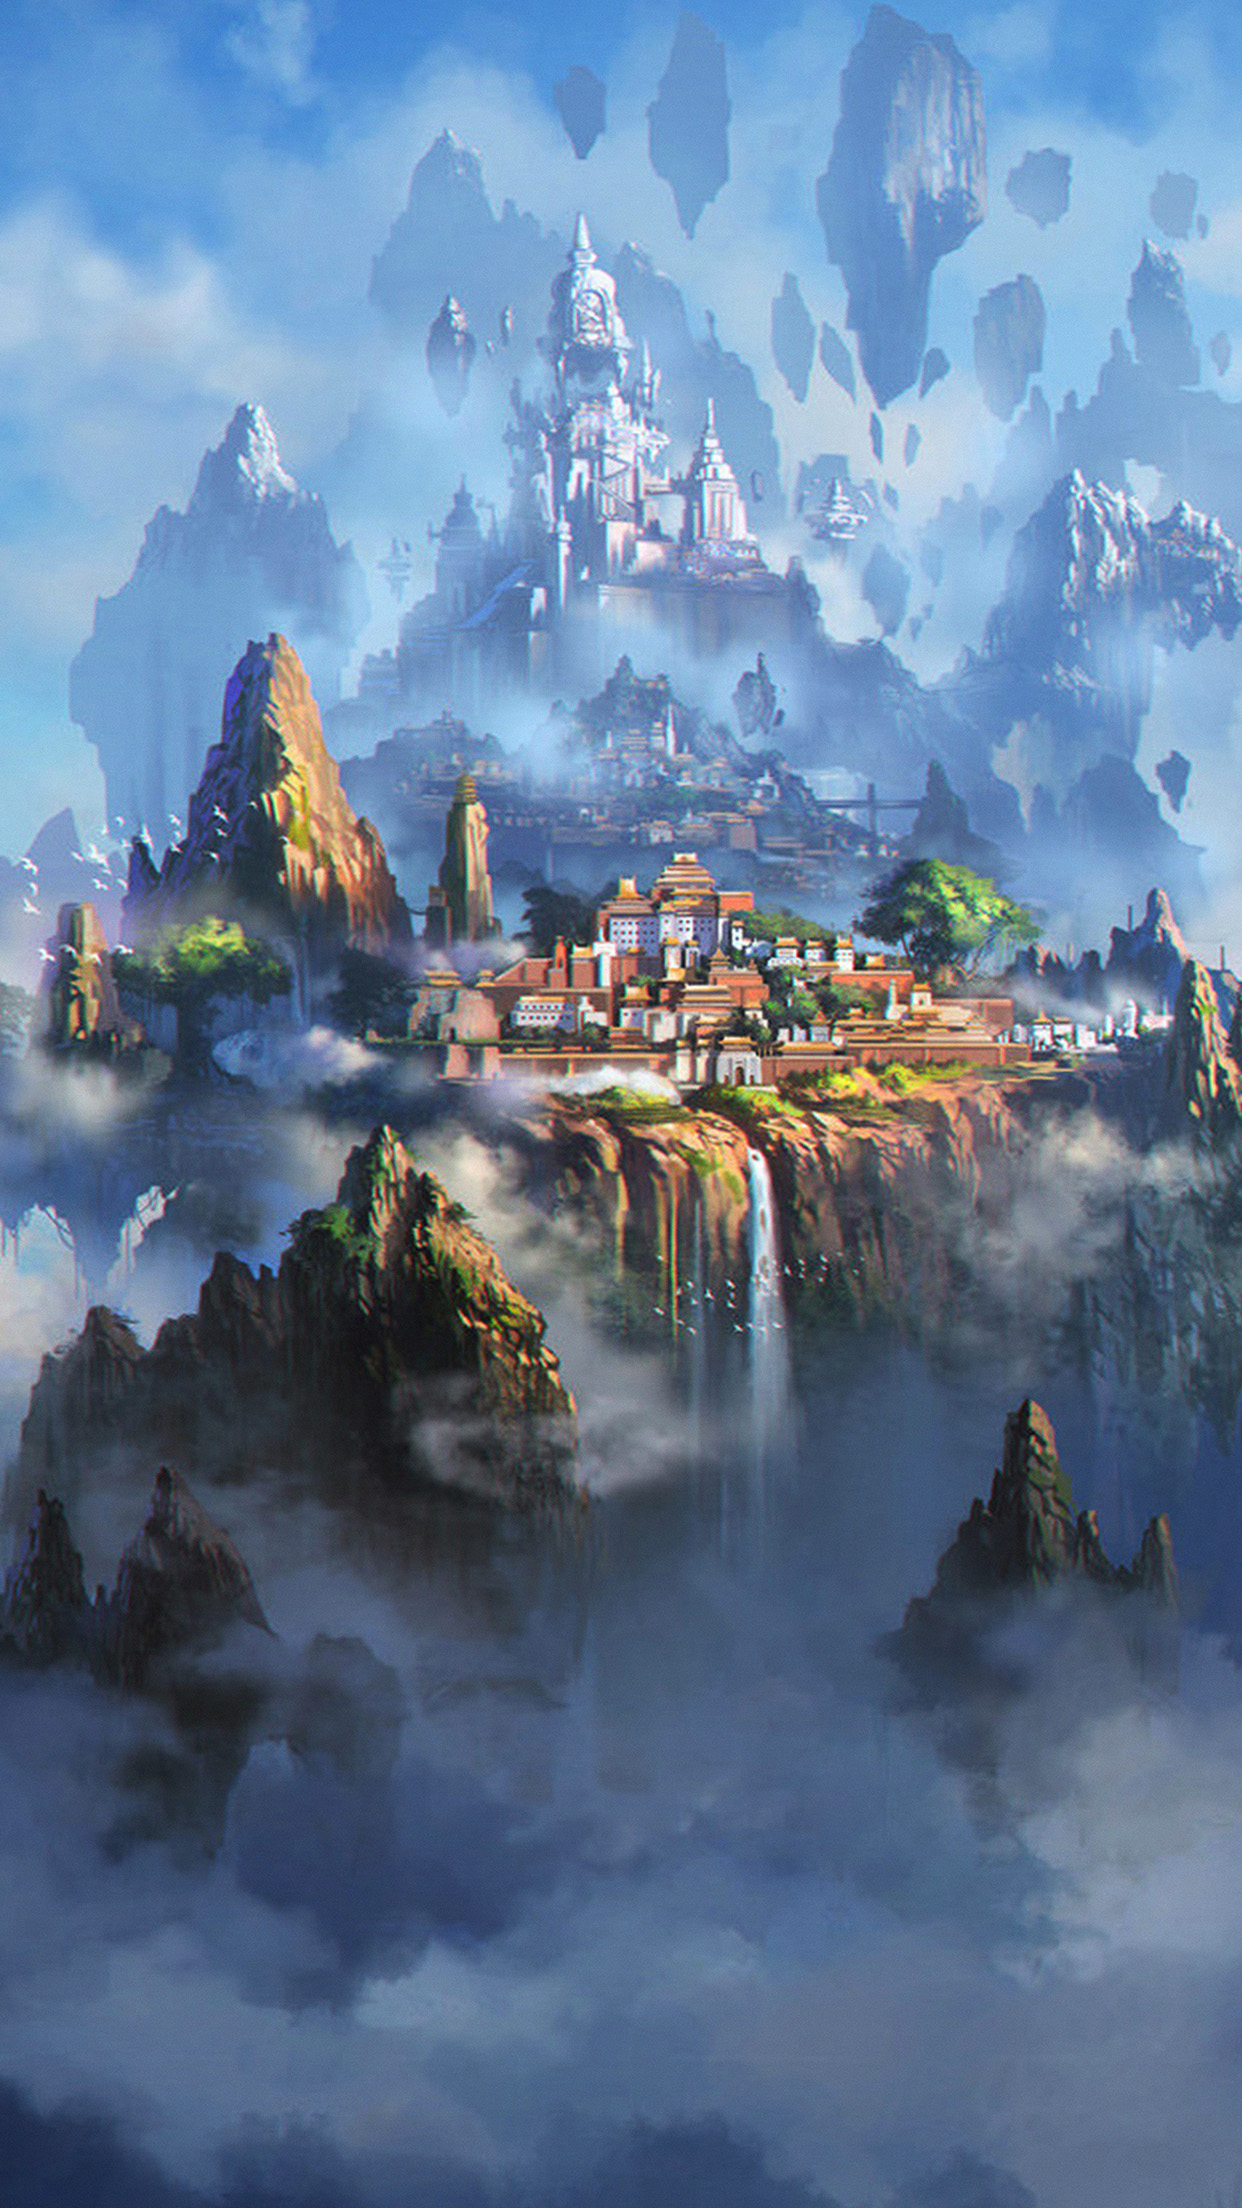 I love papers av35 cloud town fantasy anime liang xing - Fantasy wallpaper anime ...